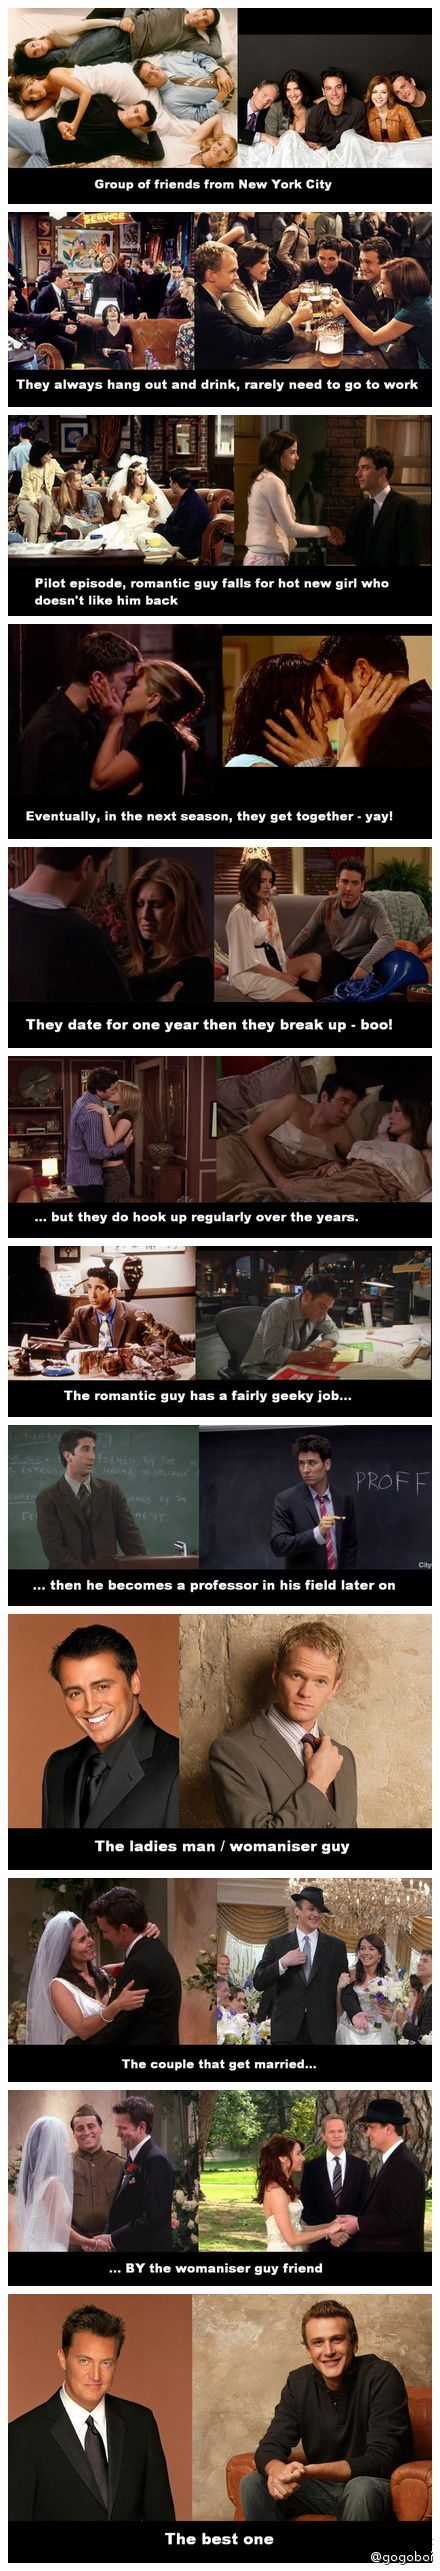 I have no where to put this... so it's going in here. No wonder I love How I Met Your Mother...